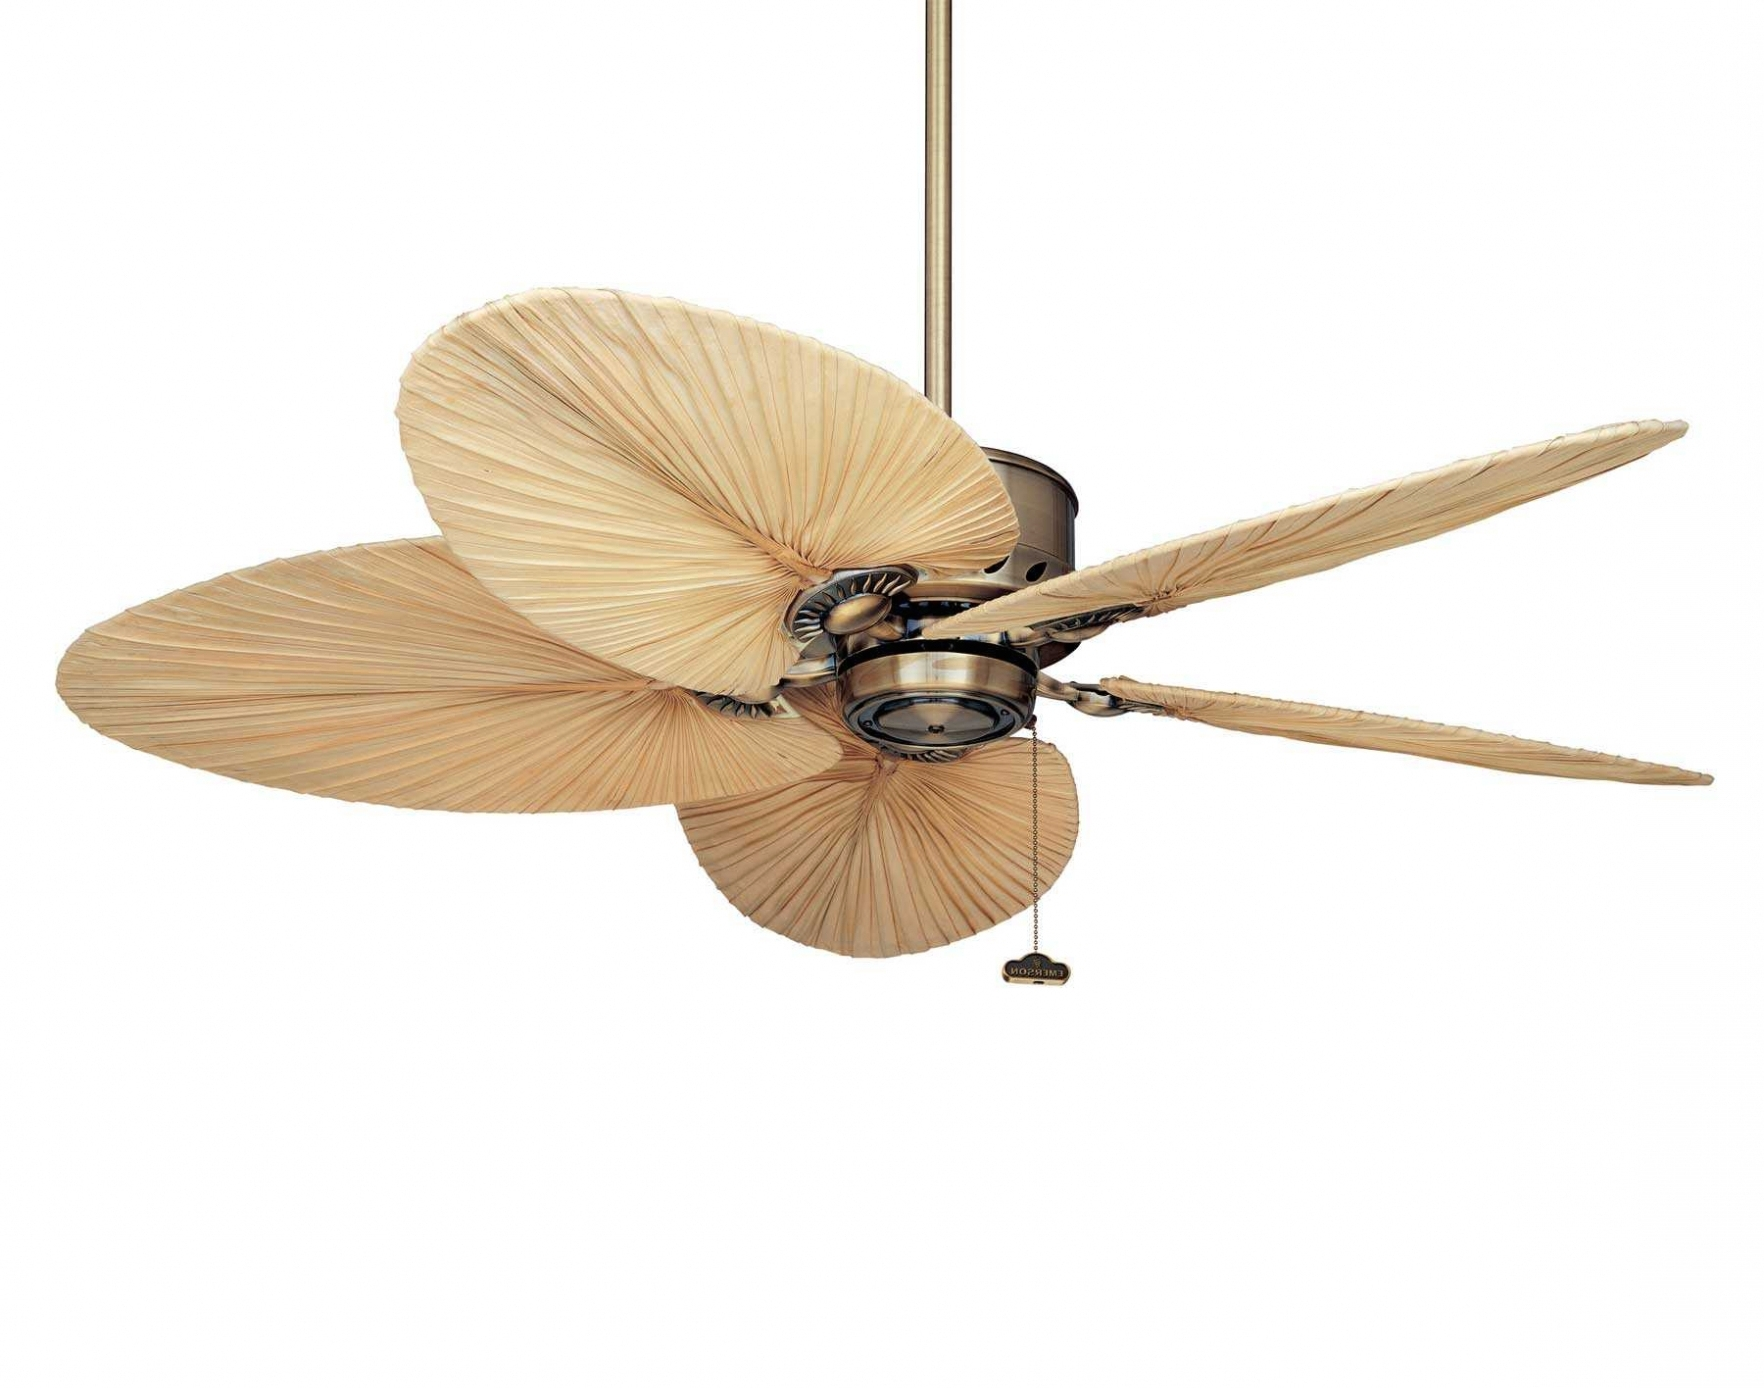 Tips: Tropical Outdoor Ceiling Fans With Lights White Fan 2018 And Intended For Recent Tropical Outdoor Ceiling Fans (View 4 of 20)